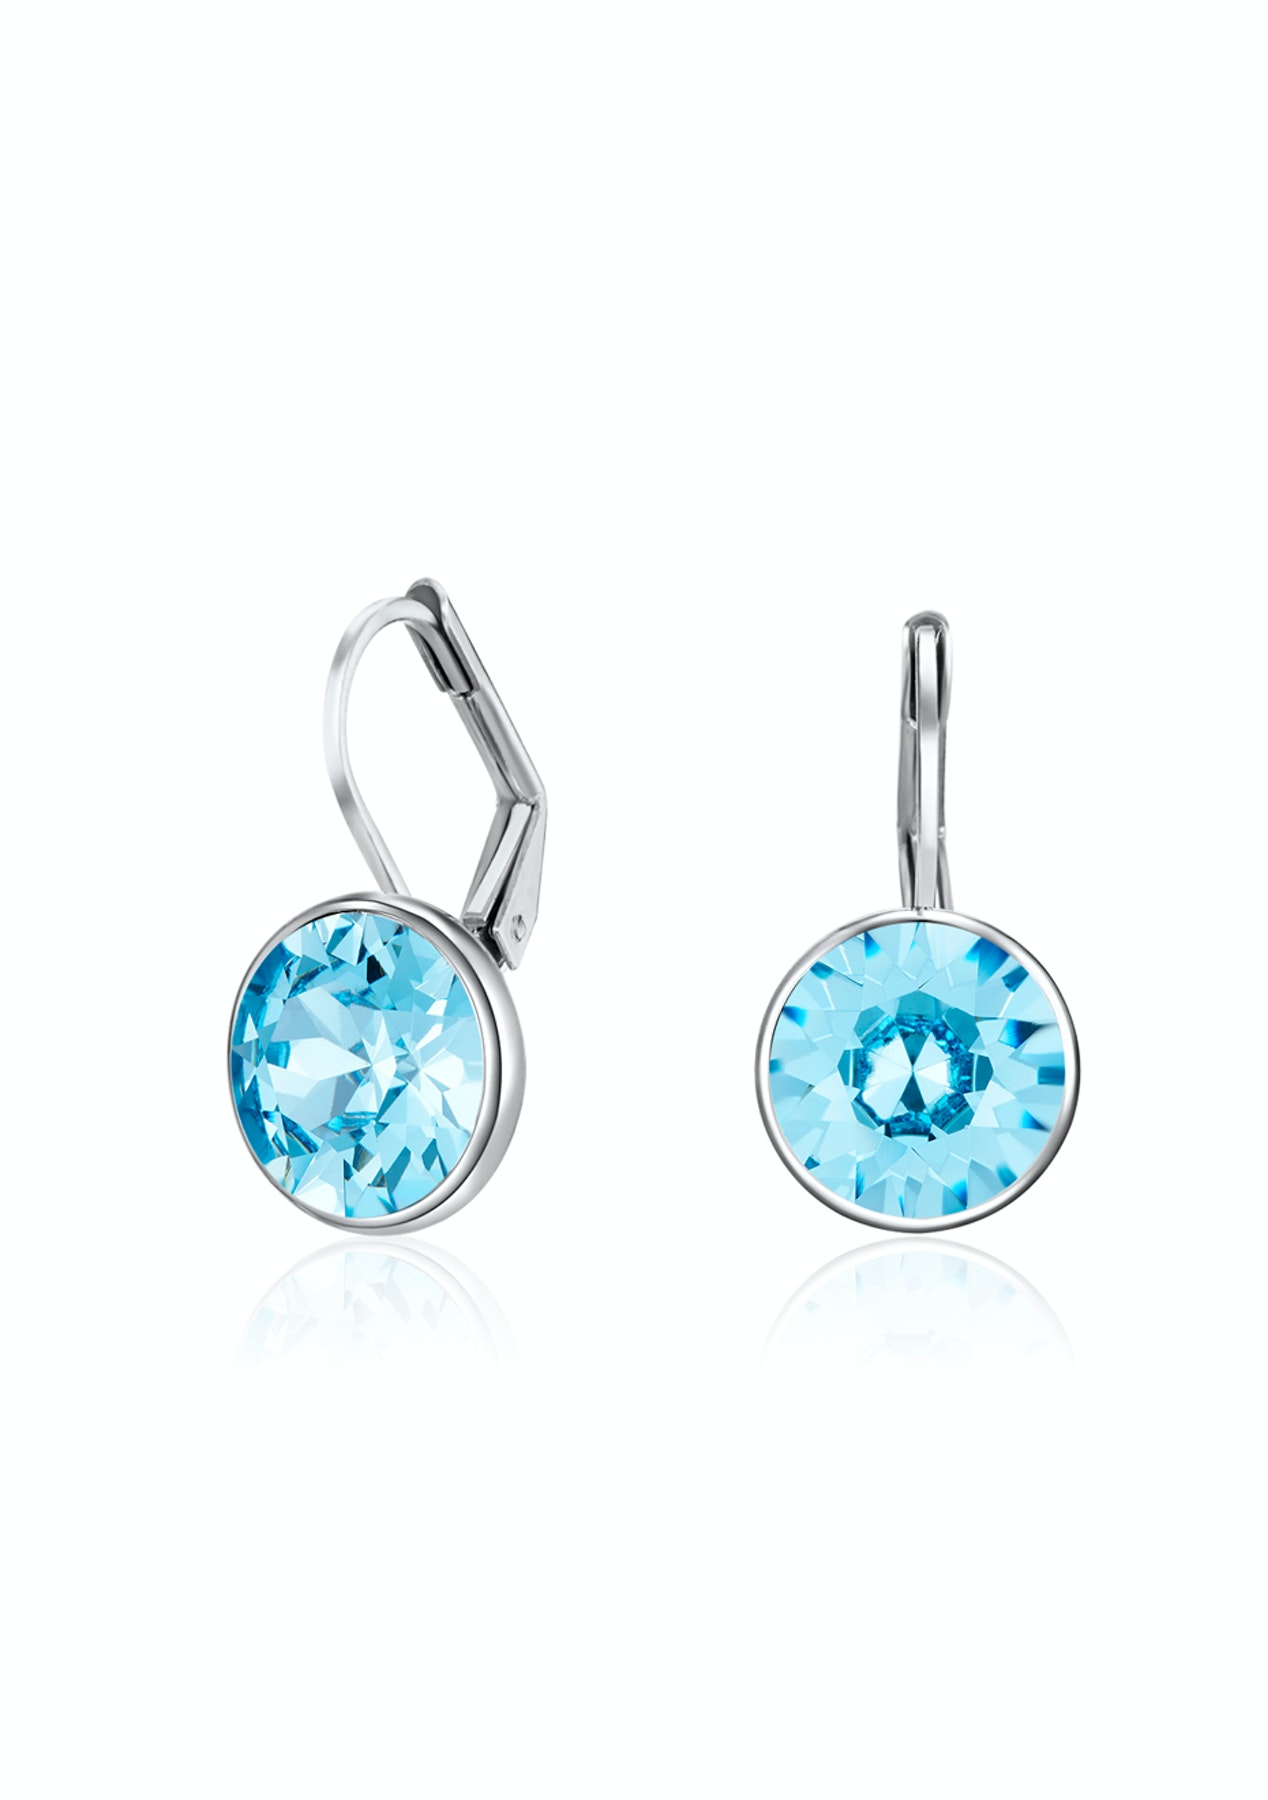 Drop Earrings|White gold plated Embellished with Crystals from Swarovski